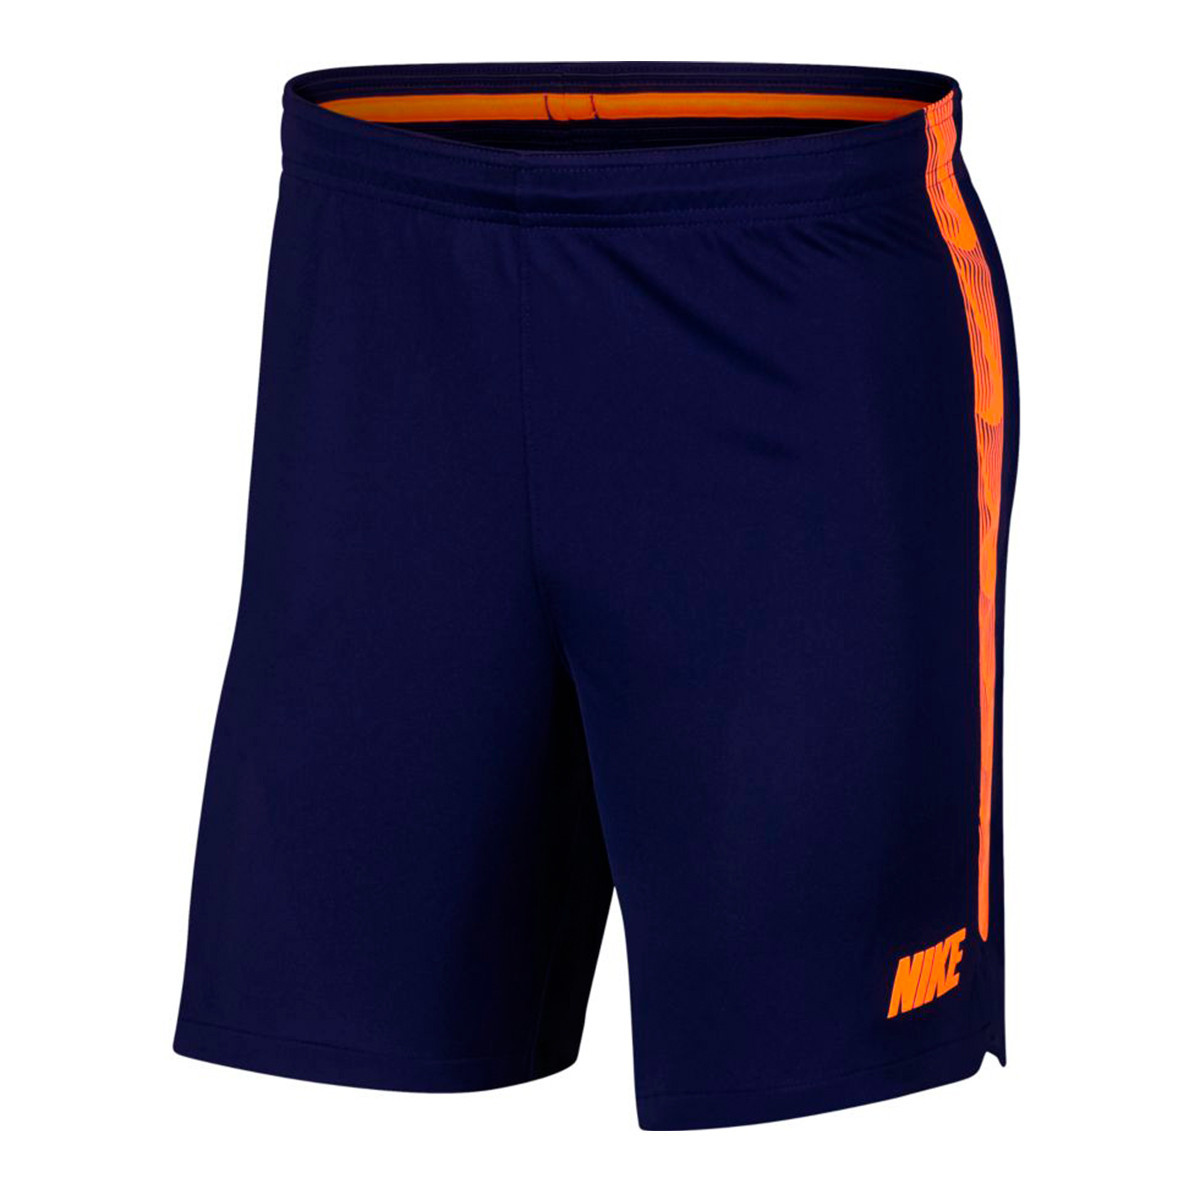 00dc96ae3 Shorts Nike Dri-FIT Squad Niño Blue void-Total orange - Tienda de ...